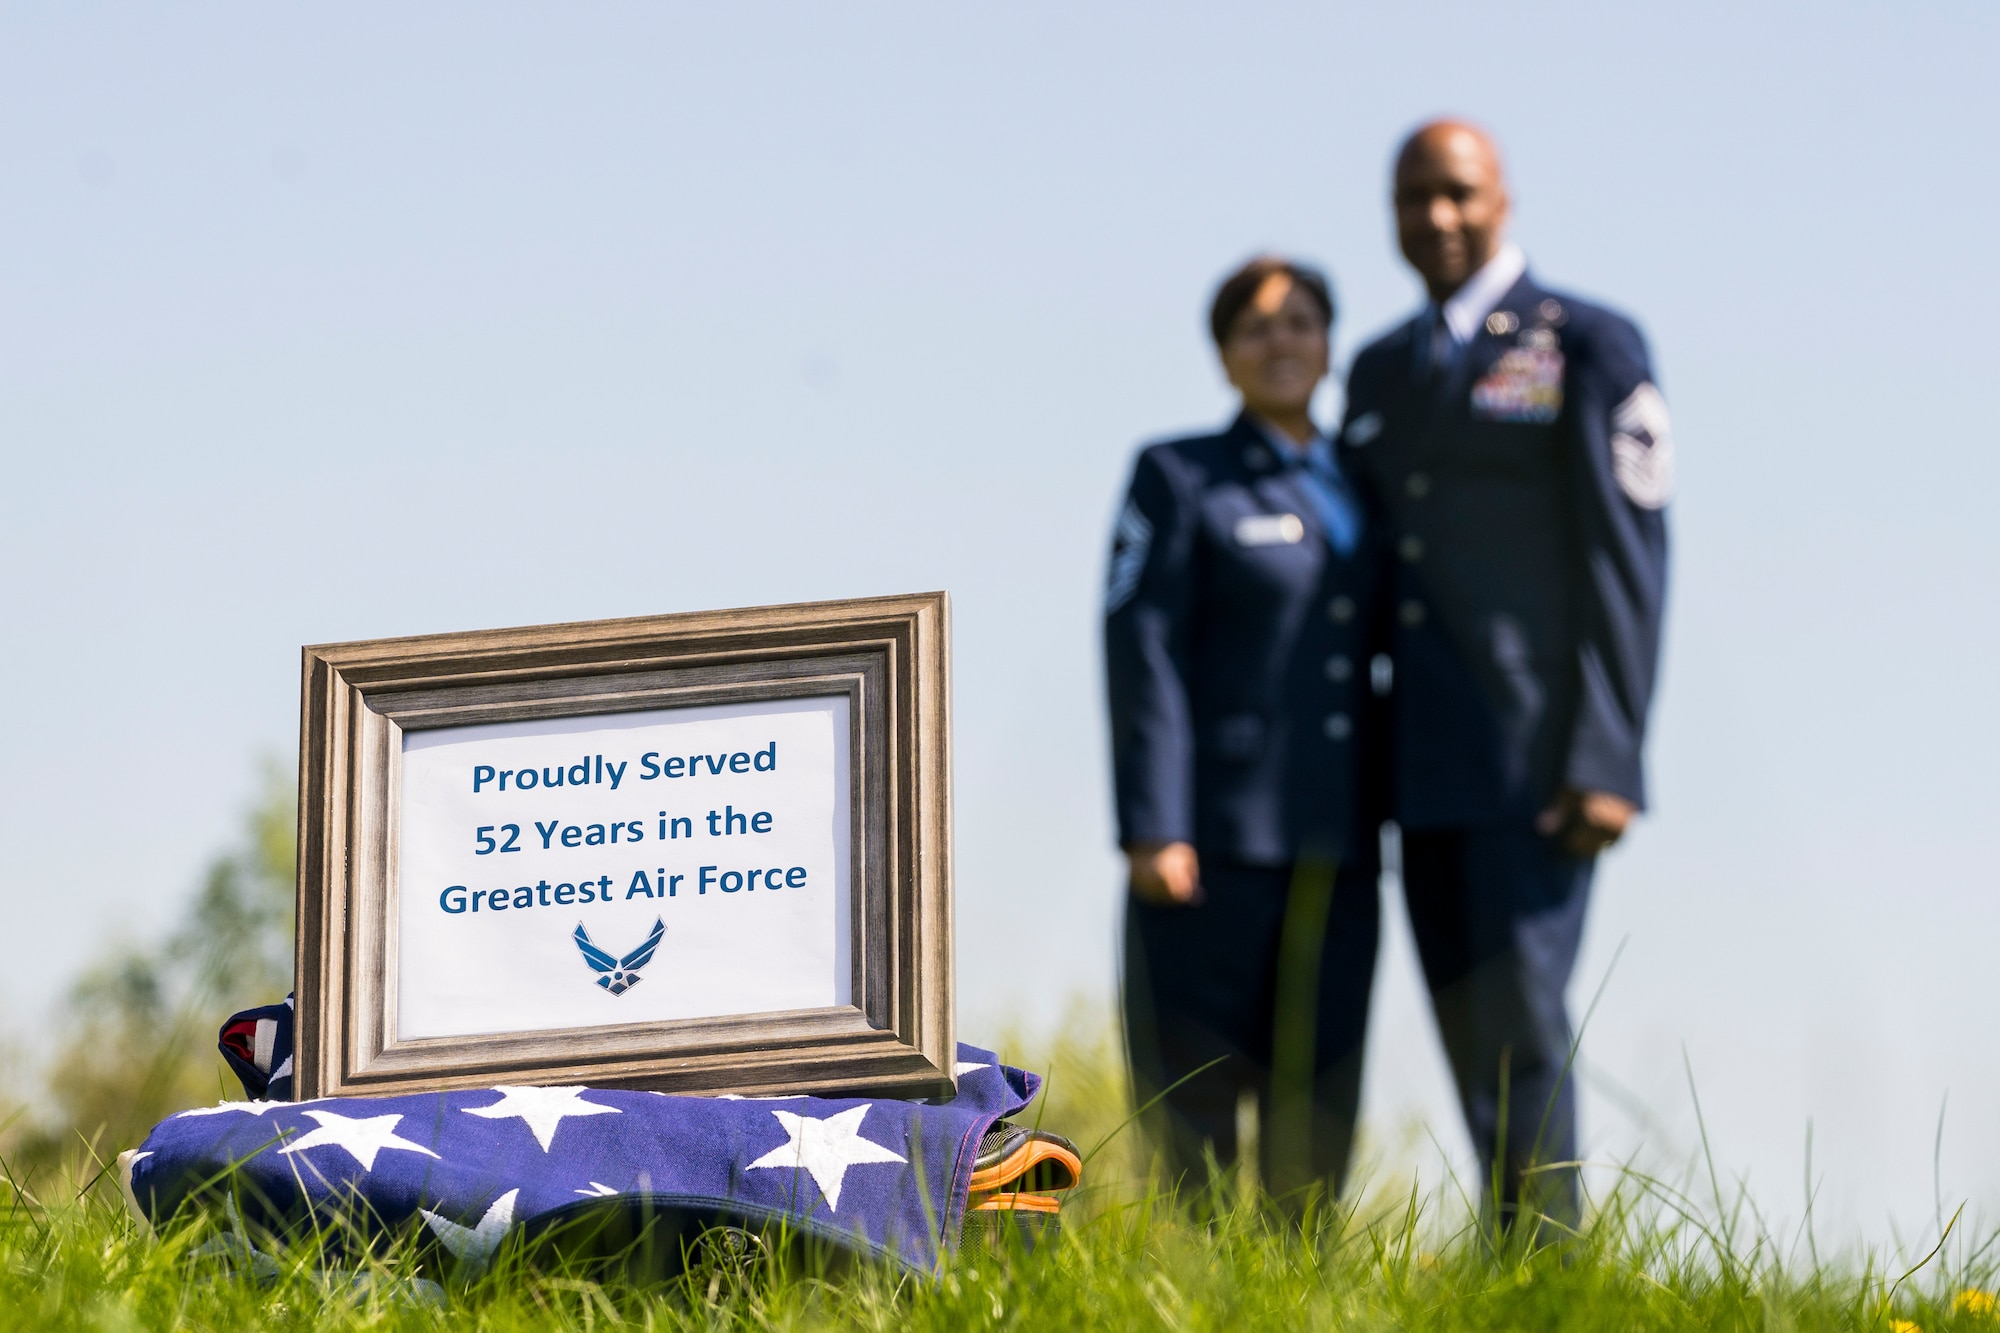 Retired U.S. Air Force Chief Master Sgt. Robinson Joseph, former U.S. Air Forces in Europe – Air Forces Africa Chief Enlisted Manager for the Air Force Installation Contracting Center, and his wife, retired Chief Master Sgt. Leenette Joseph, former USAFE Equal Opportunity functional manager, retired together at Ramstein Air Base on Oct. 25, 2019.